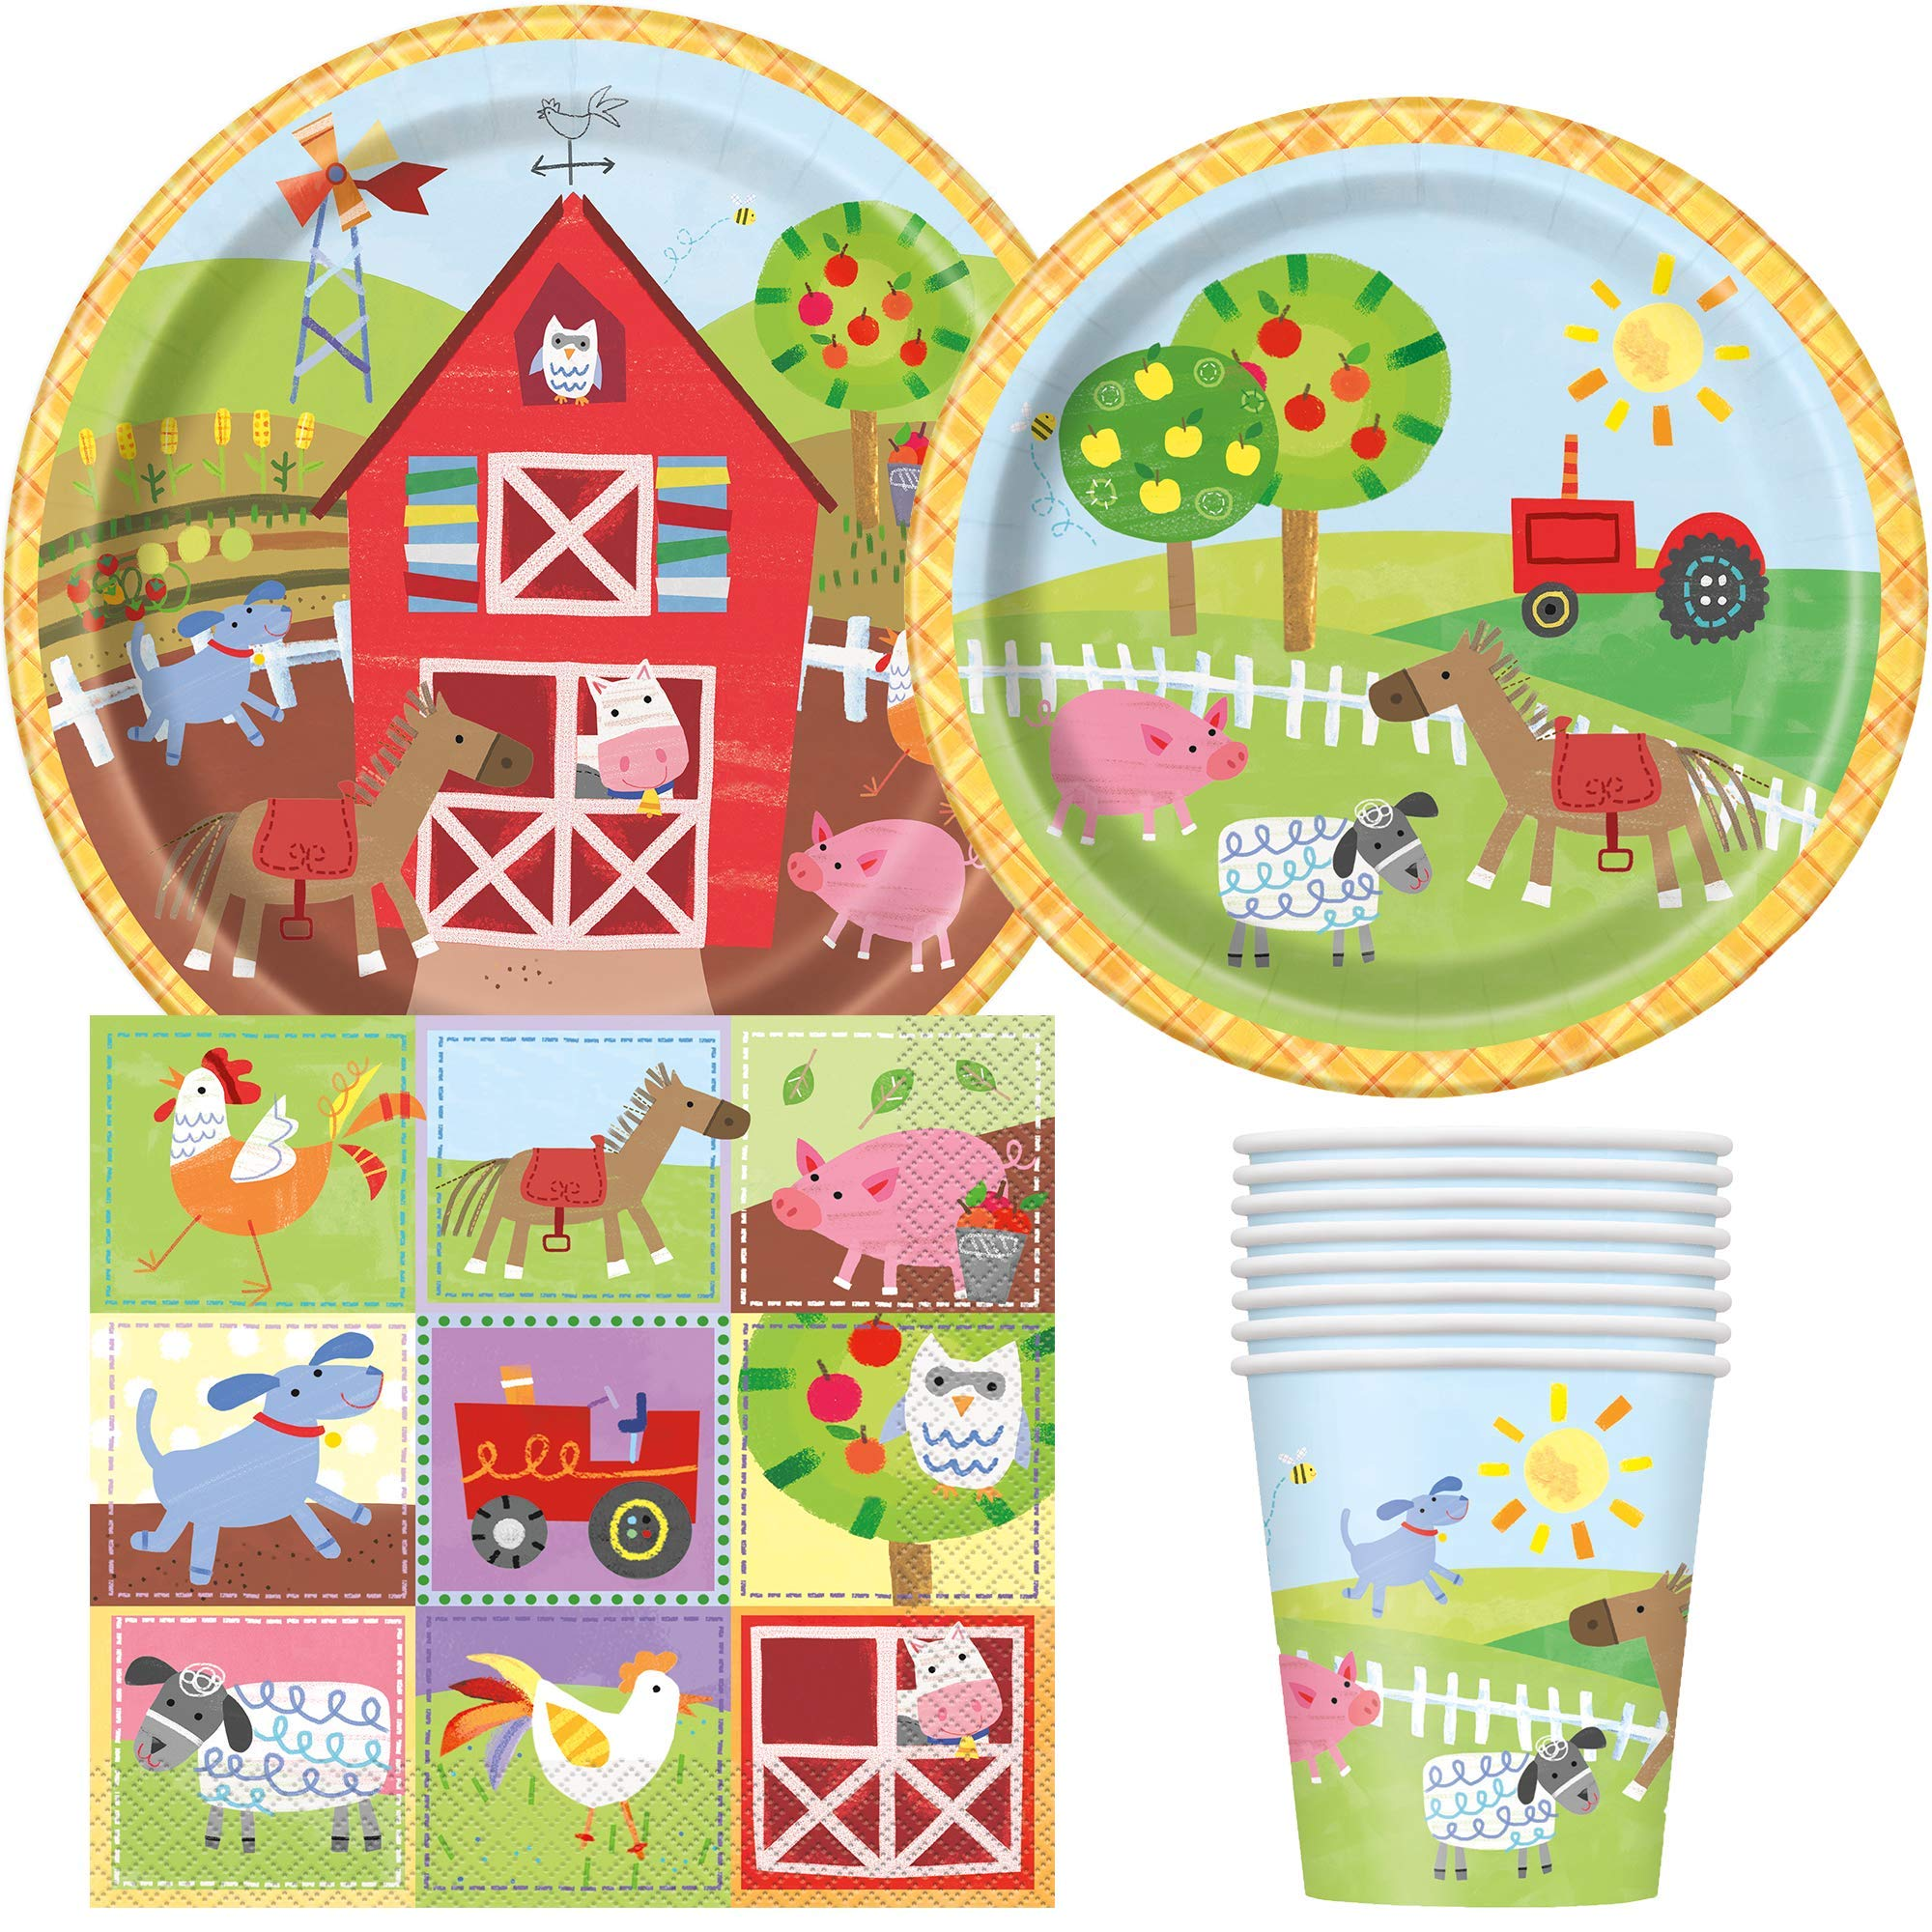 Barnyard Farm Party Birthday Supplies Pack for 8 Guests Including Lunch Plates, Dessert Plates, Lunch Napkins, Cups